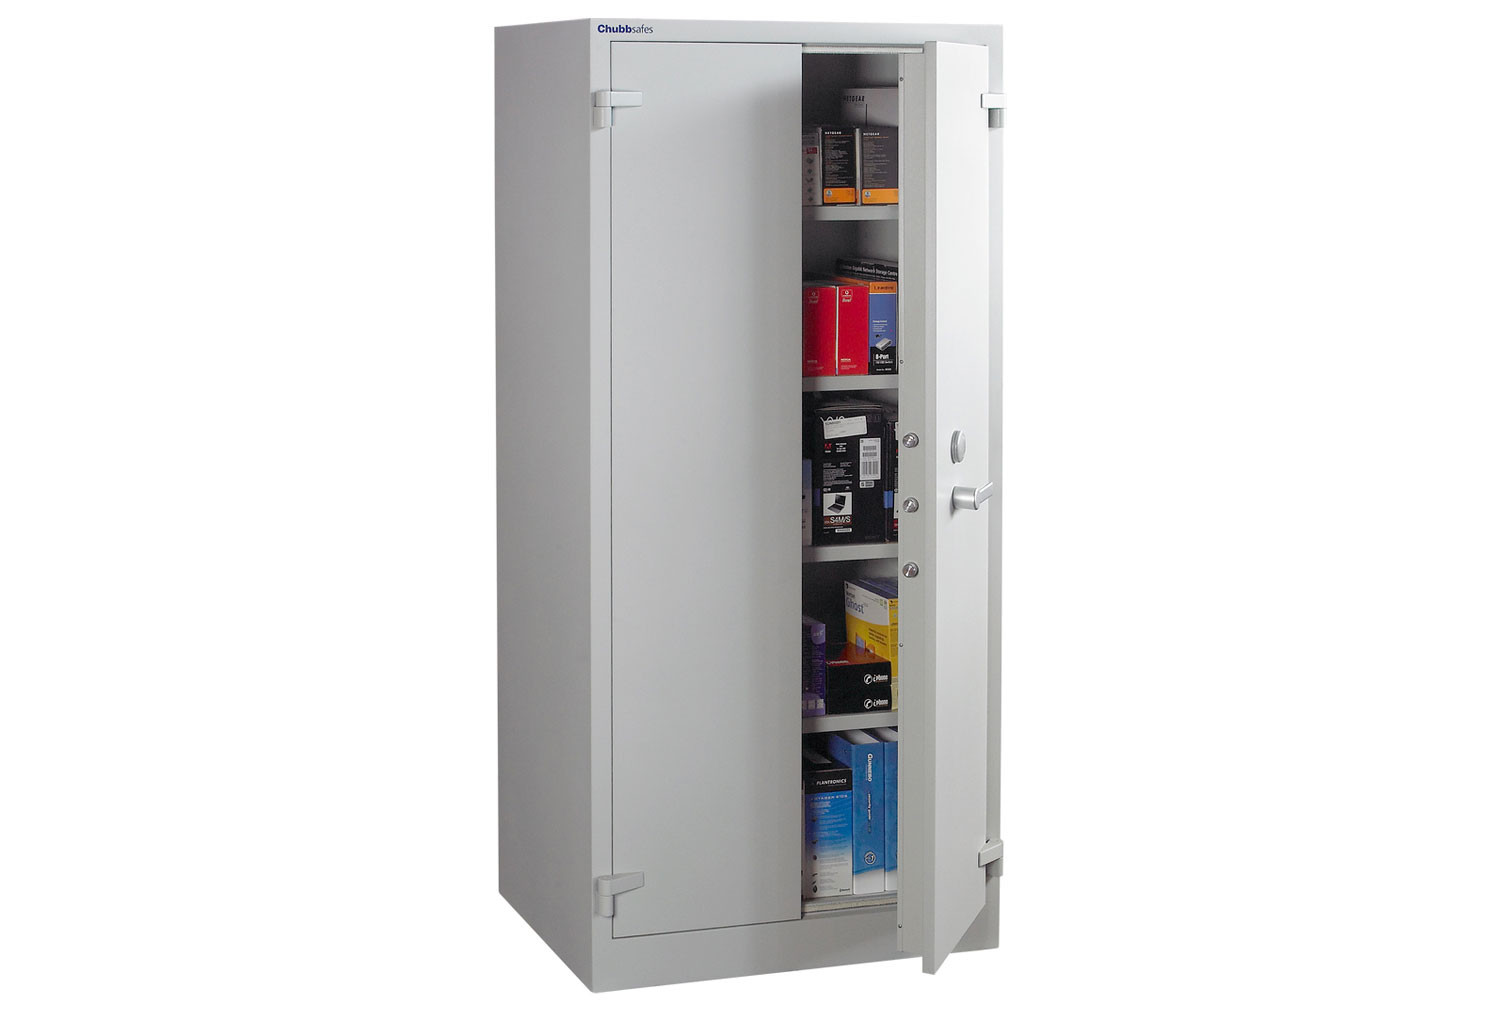 Chubbsafes Forceguard Size 3 Burglary Resistant Cabinet (680ltrs)